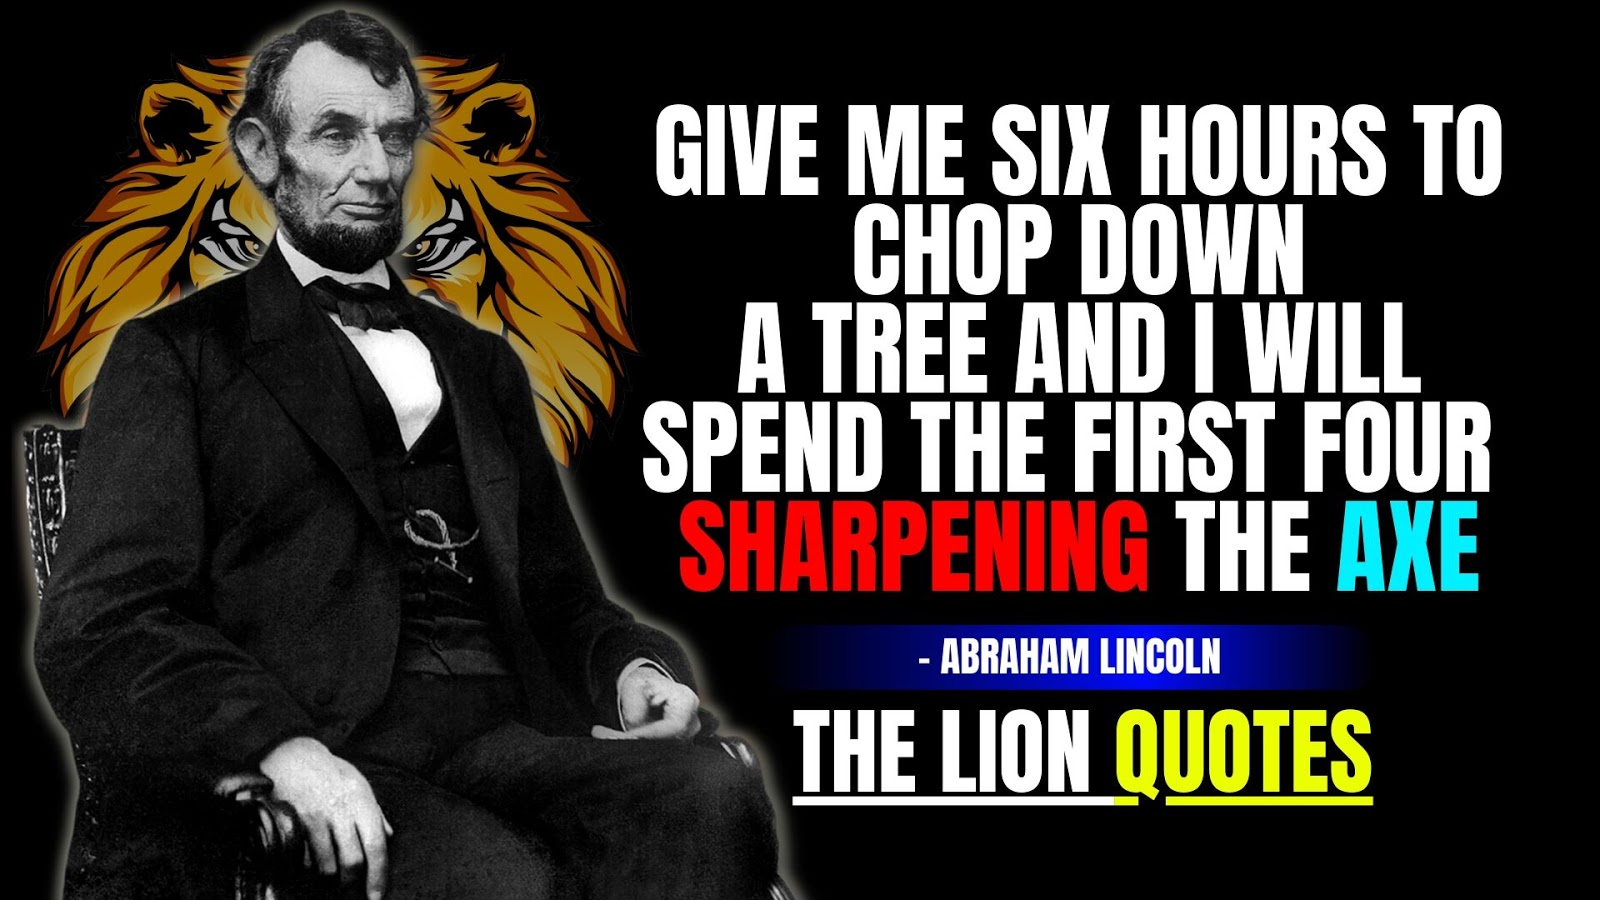 Inspiring Abraham Lincoln Quotes